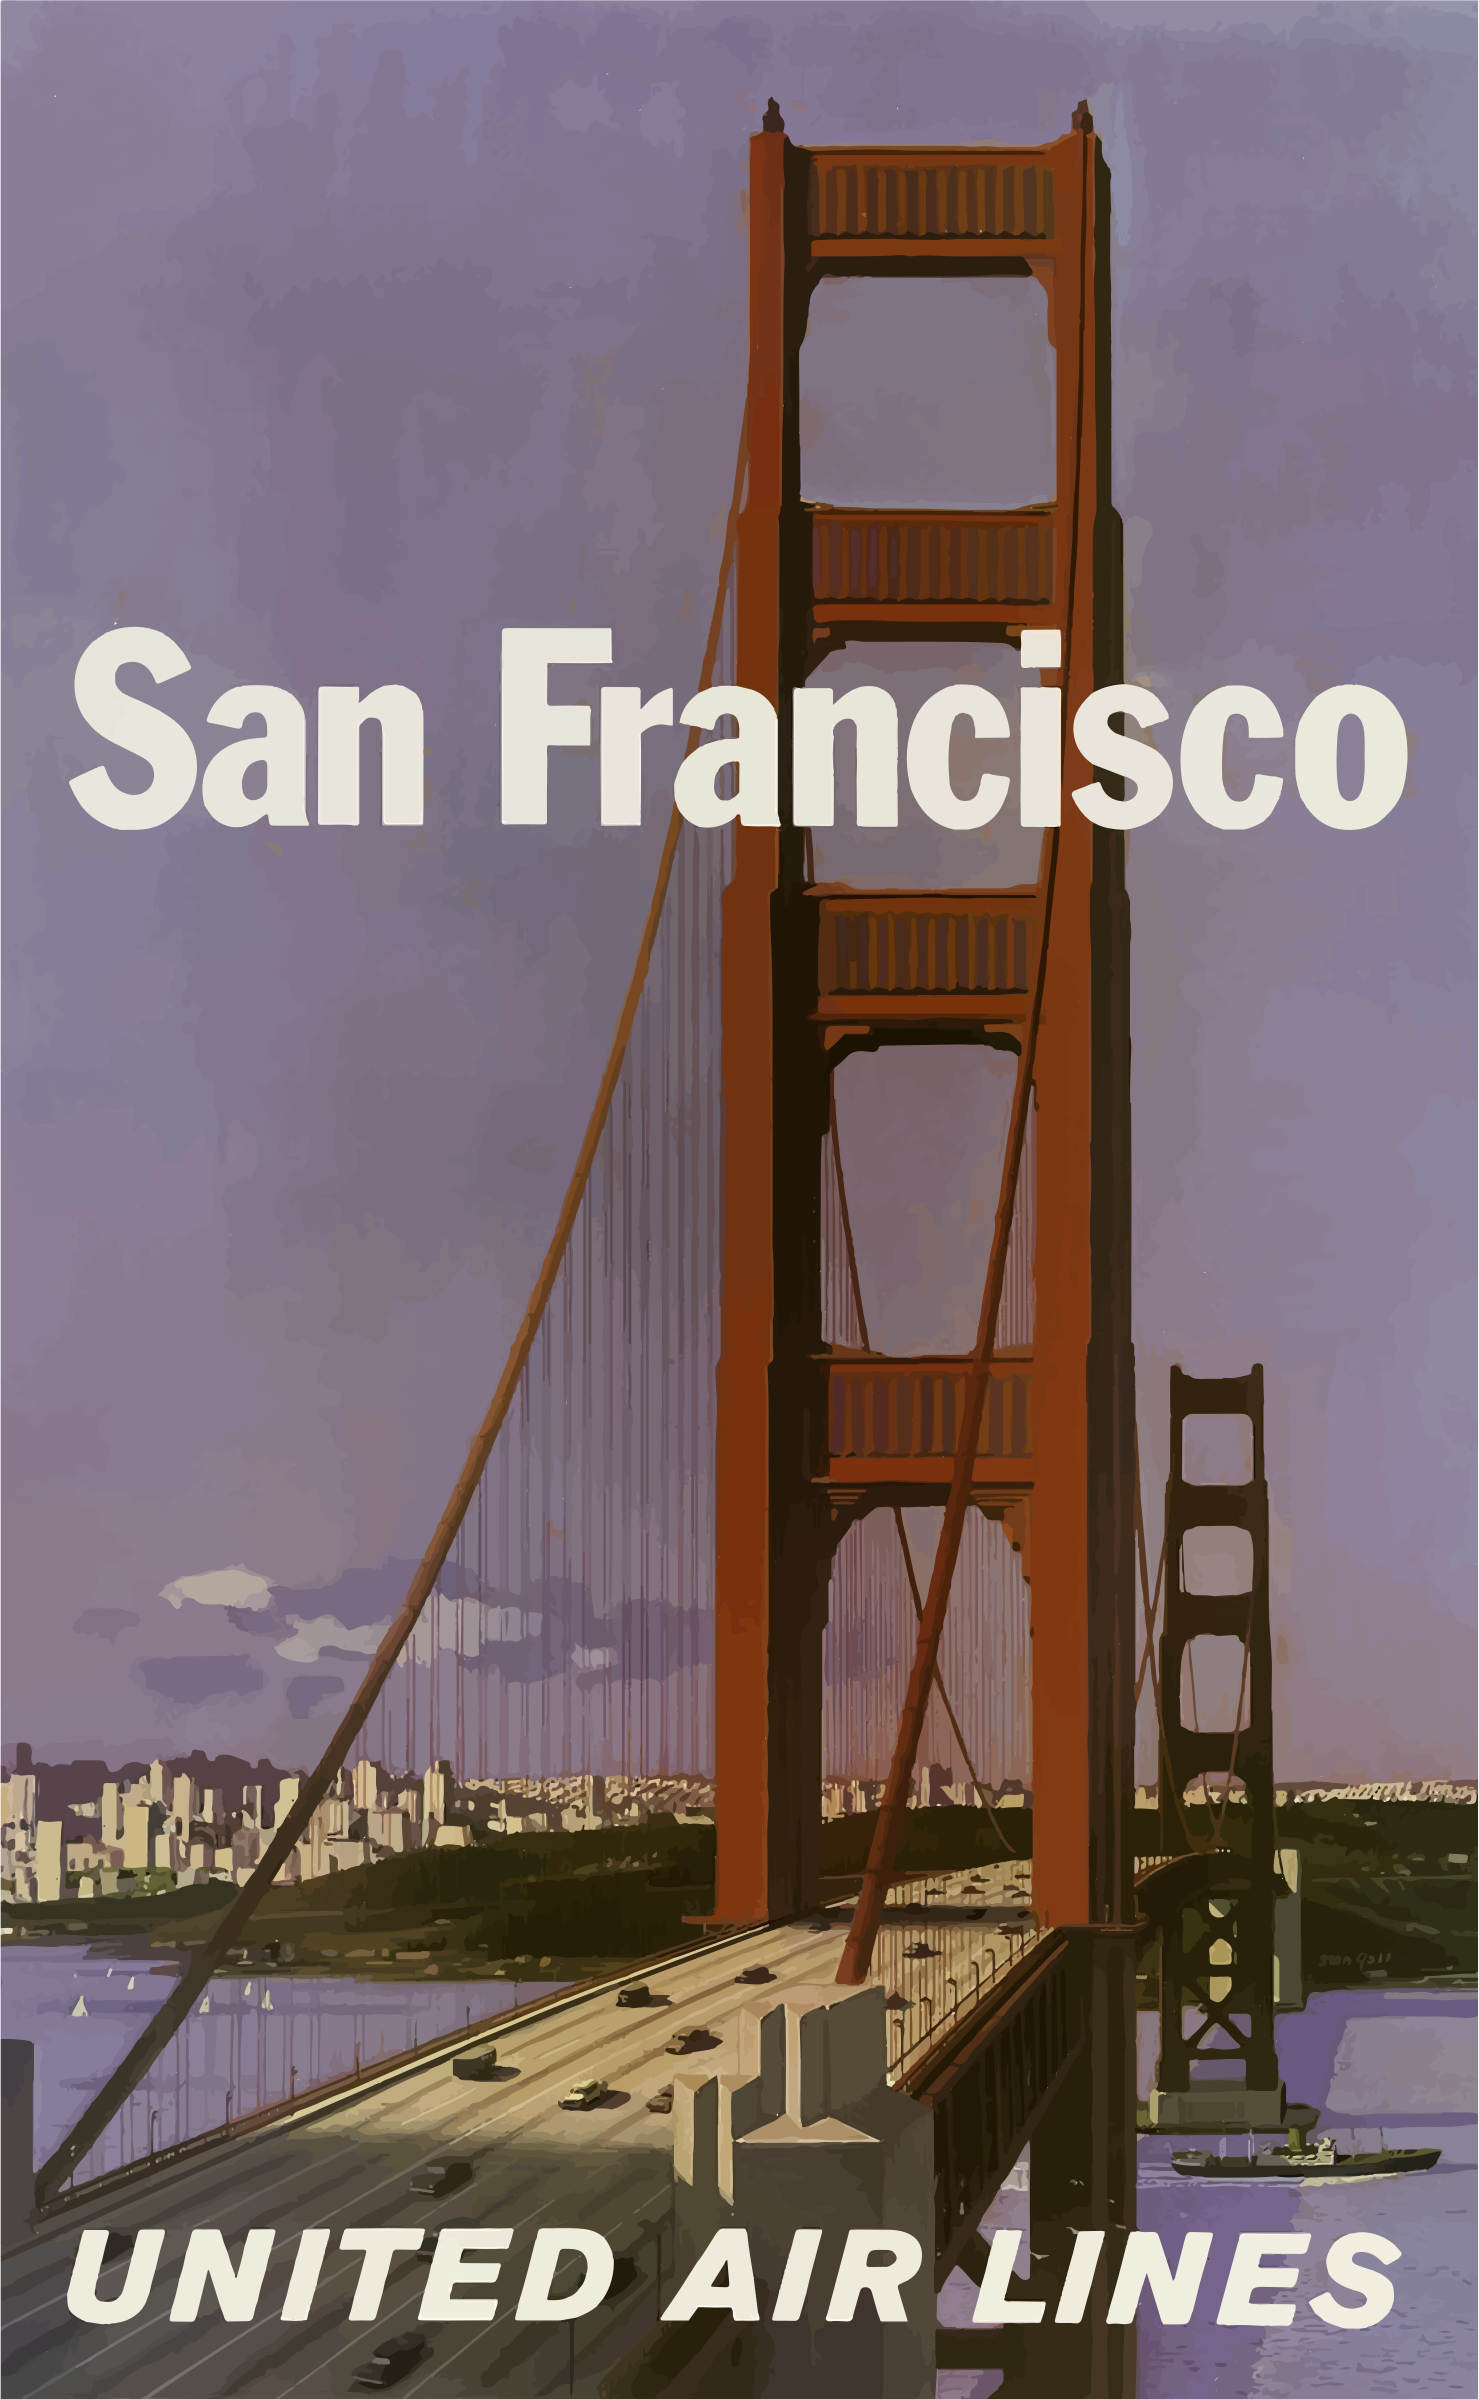 Vintage Travel Poster San Francisco 7 by GDJ